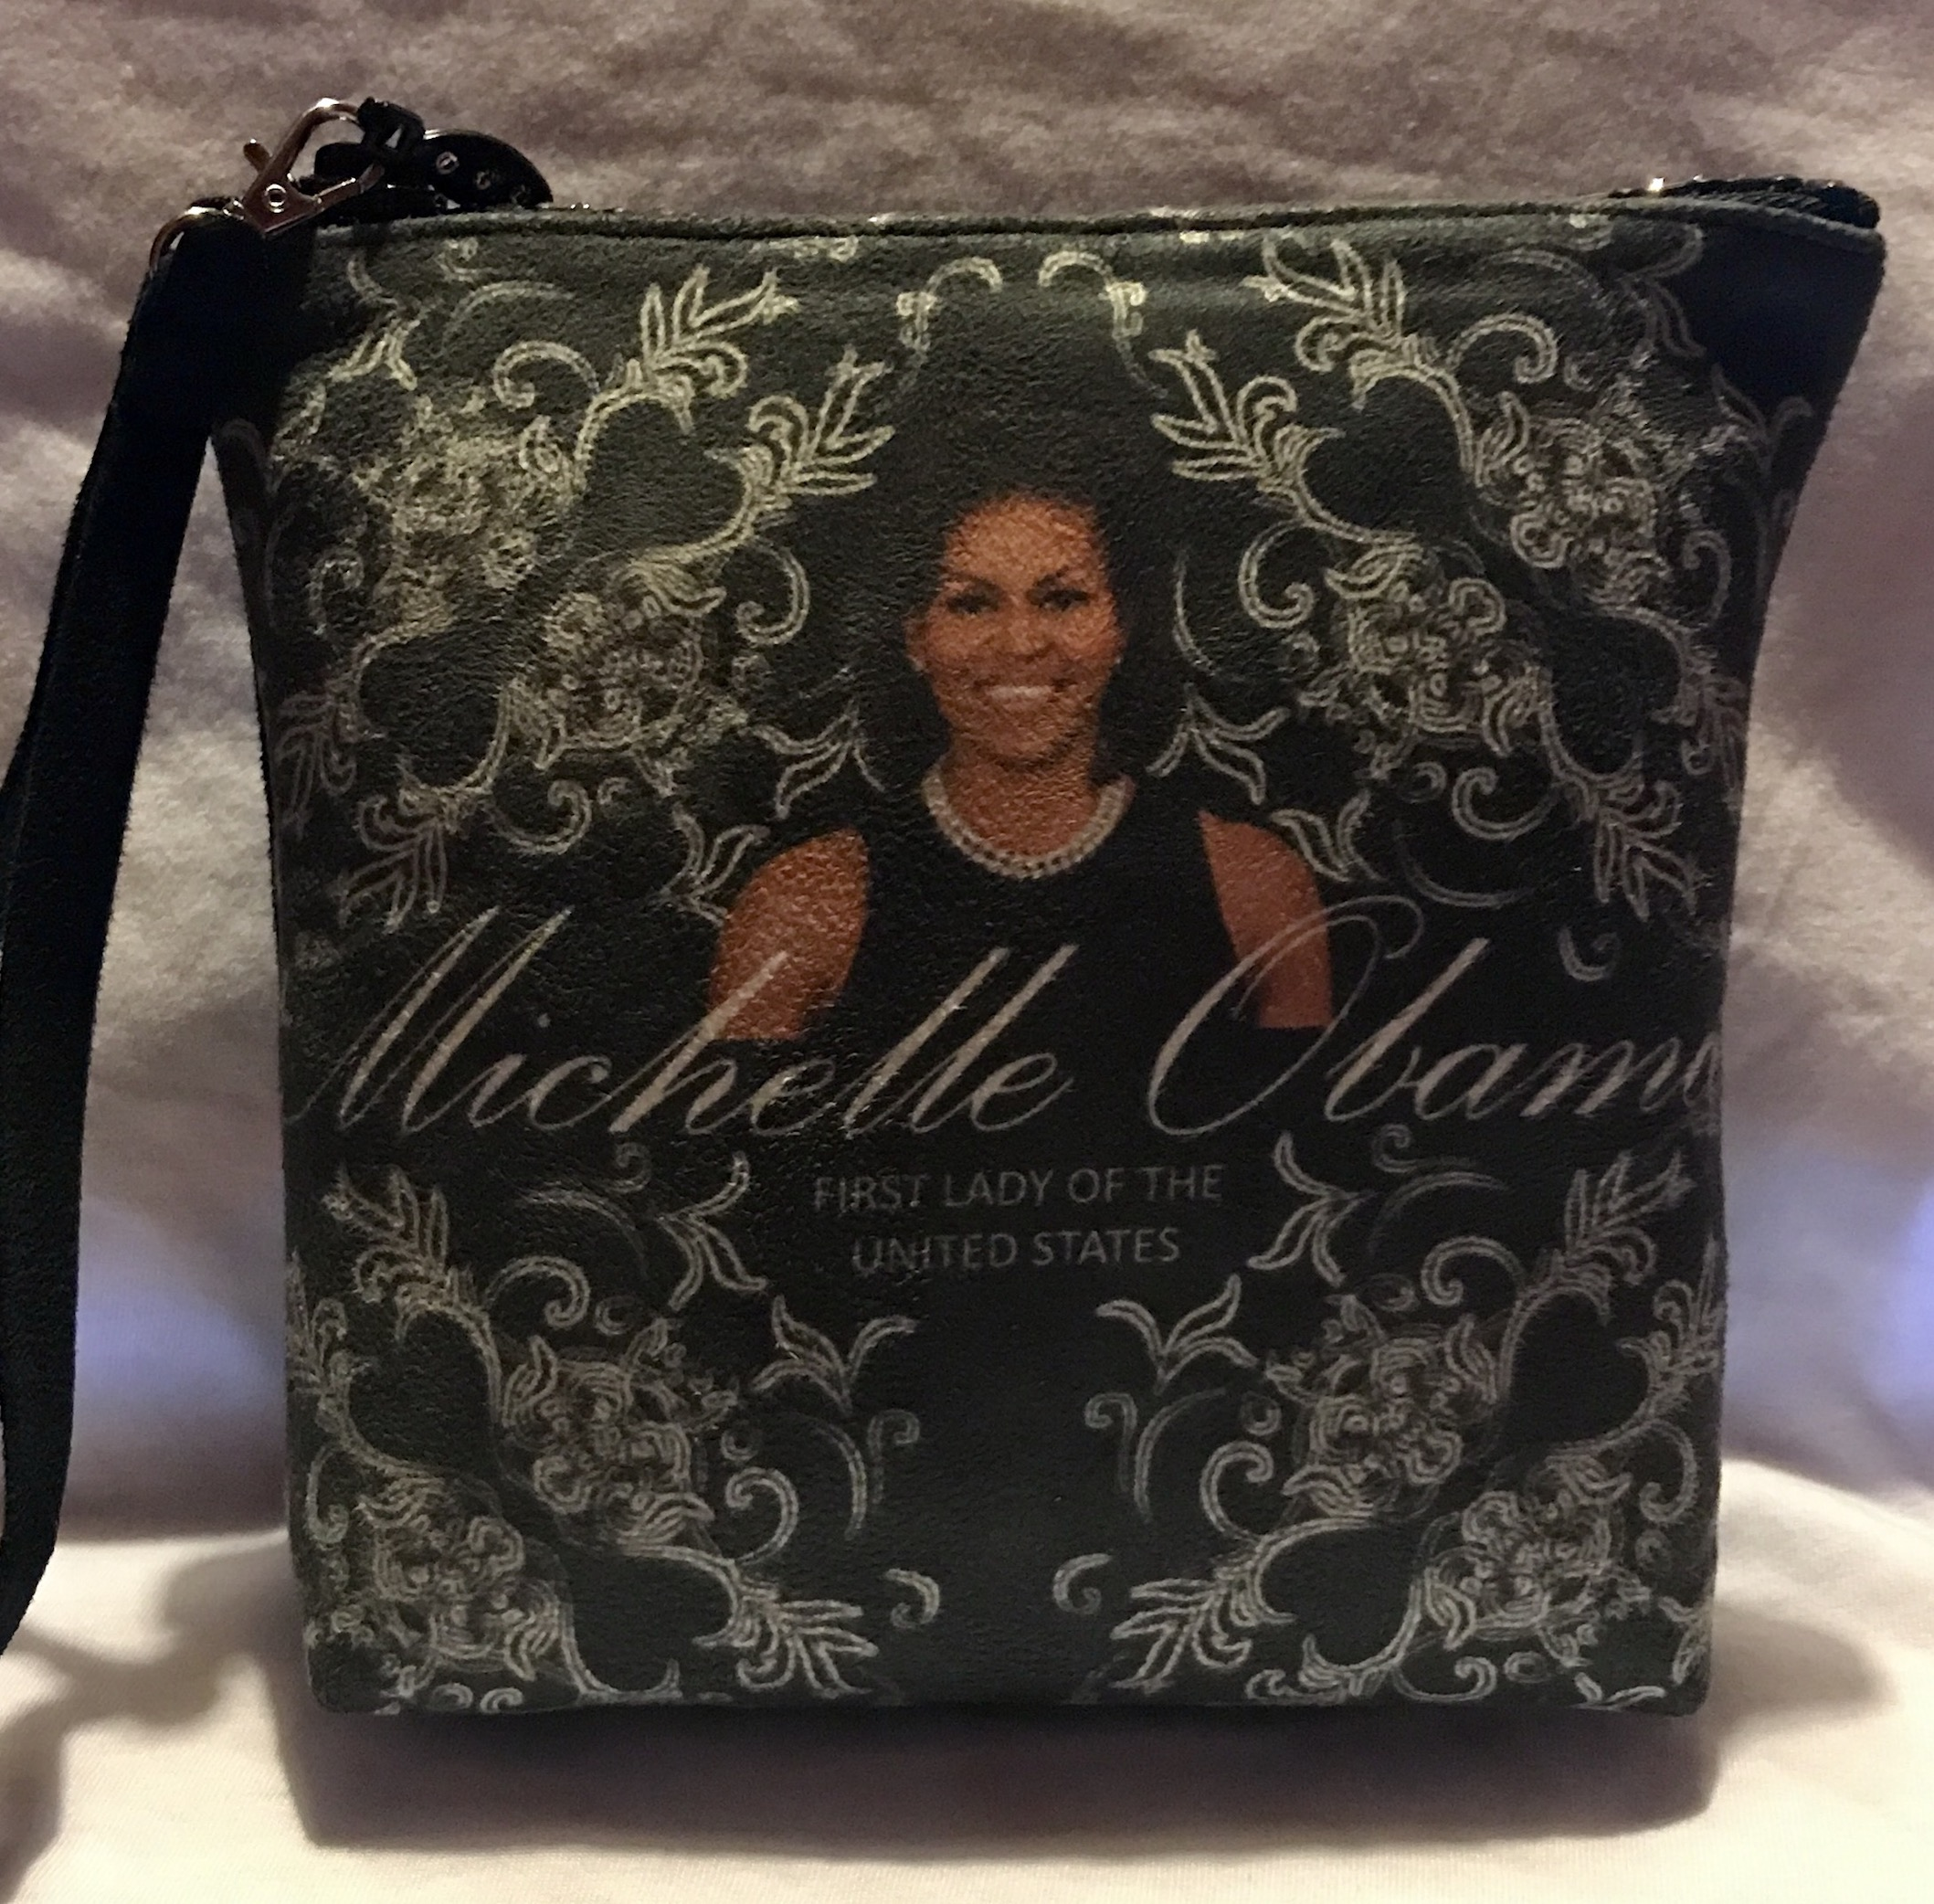 Michelle Obama Ultra-suede cross body